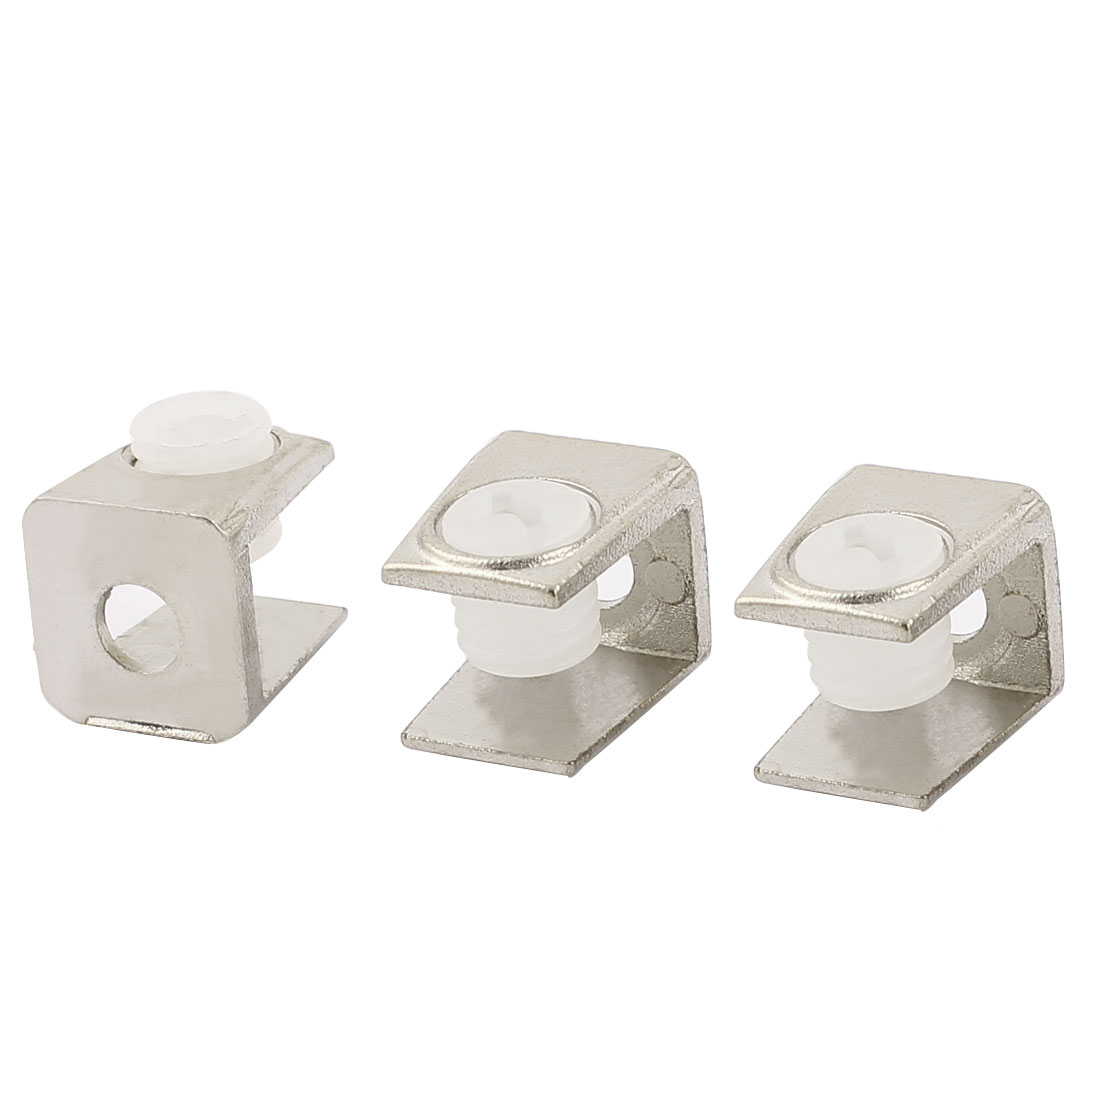 3Pcs Zinc Alloy Rectangle Shelf Support Holder Clamp Clip for 3-8mm Thickness Glass